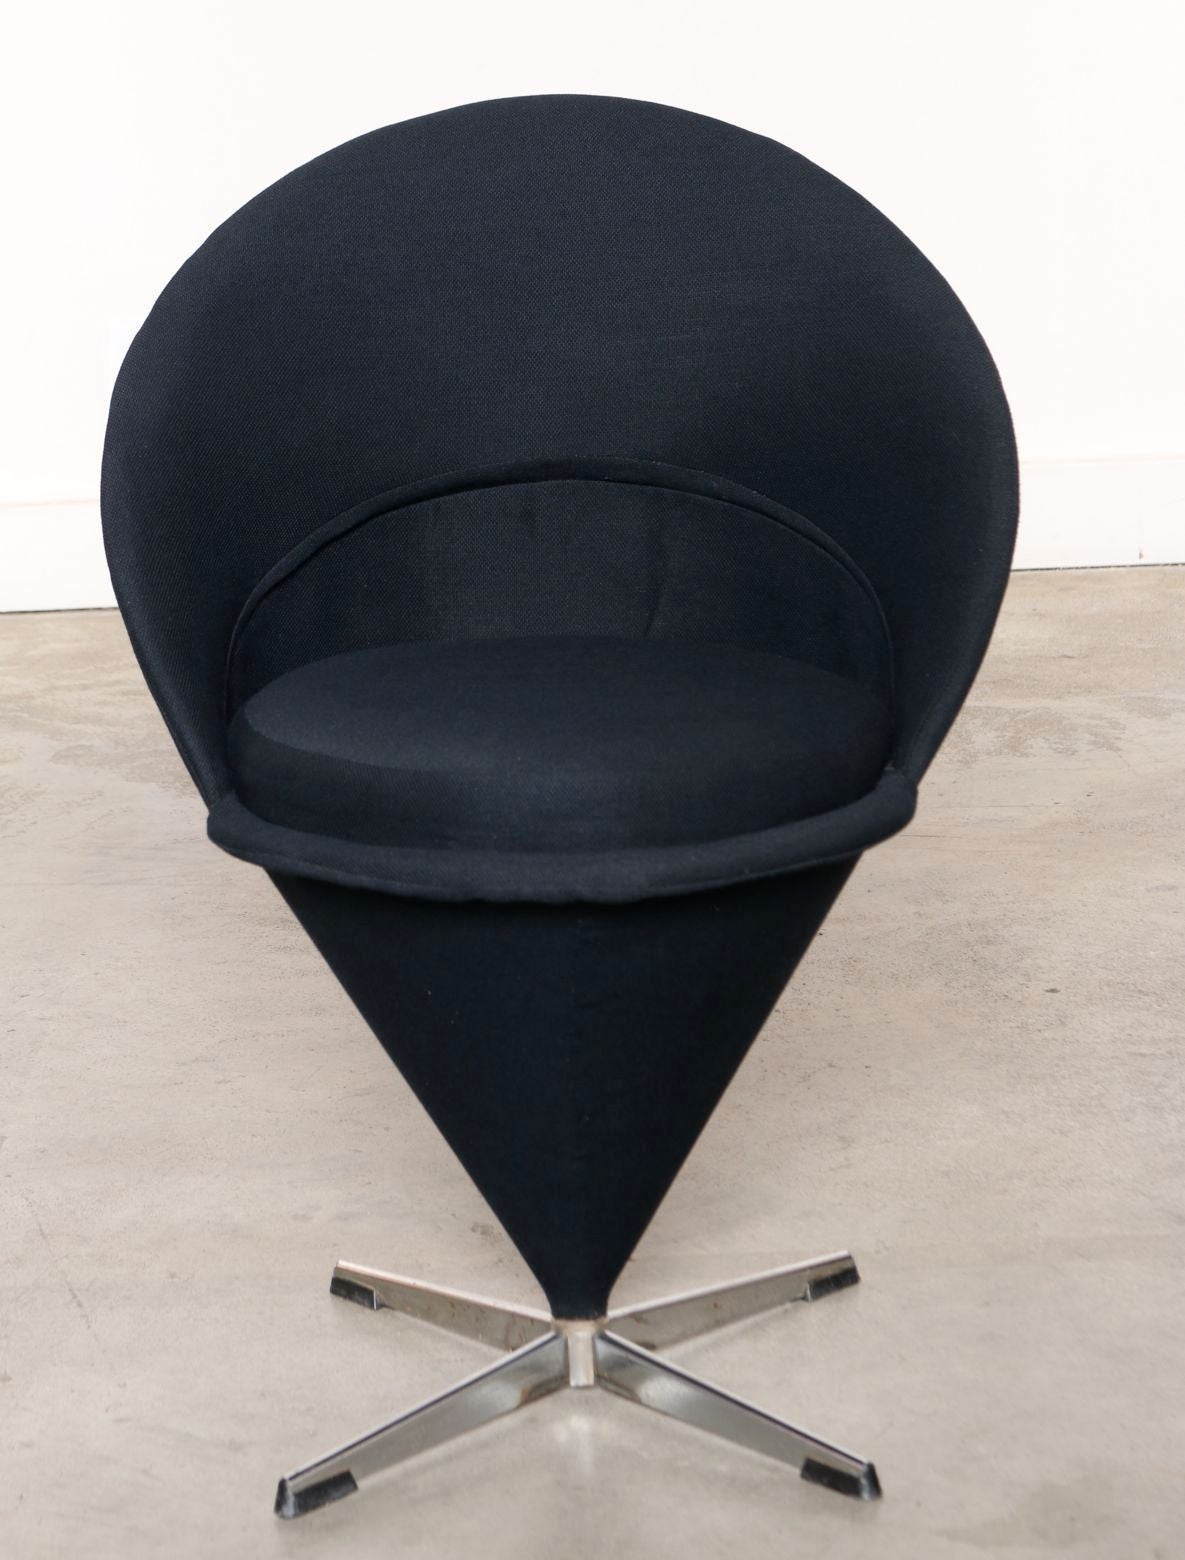 four original 1950s verner panton k1 cone chairs at 1stdibs. Black Bedroom Furniture Sets. Home Design Ideas